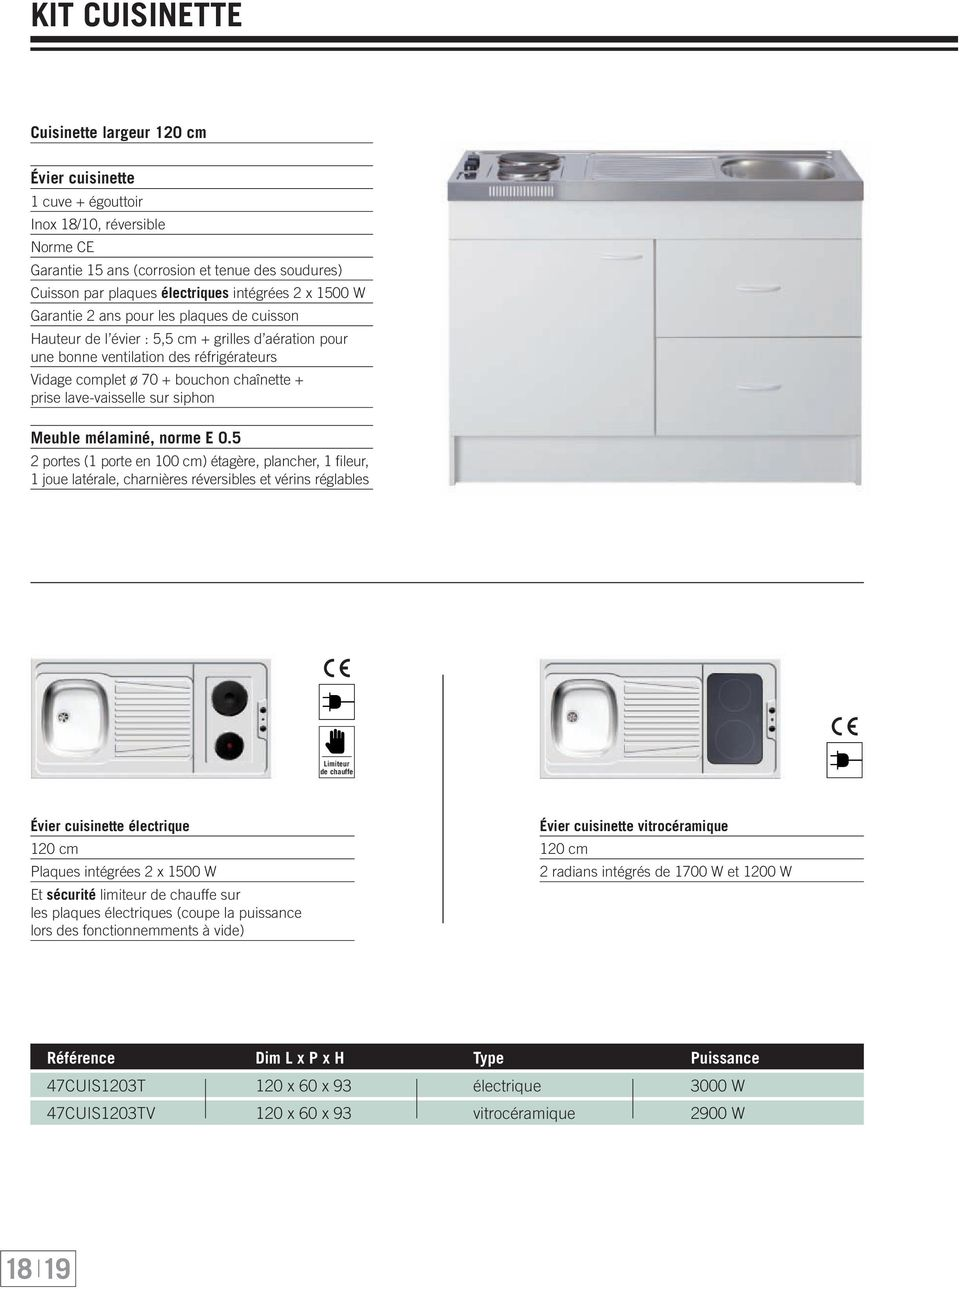 Eviers Cuisinettes Electromenager Pro Pdf Free Download